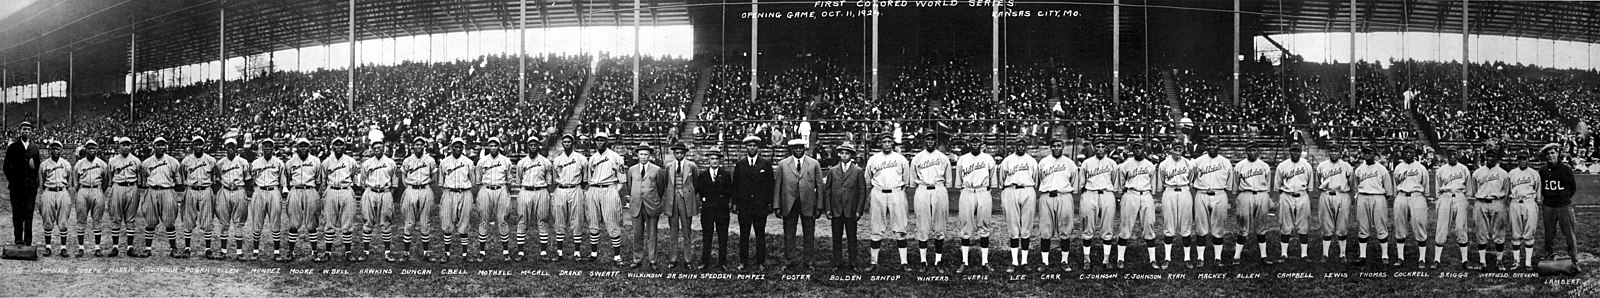 The two opposing teams line up at the 1924 Colored World Series 1924 Negro League World Series.jpg